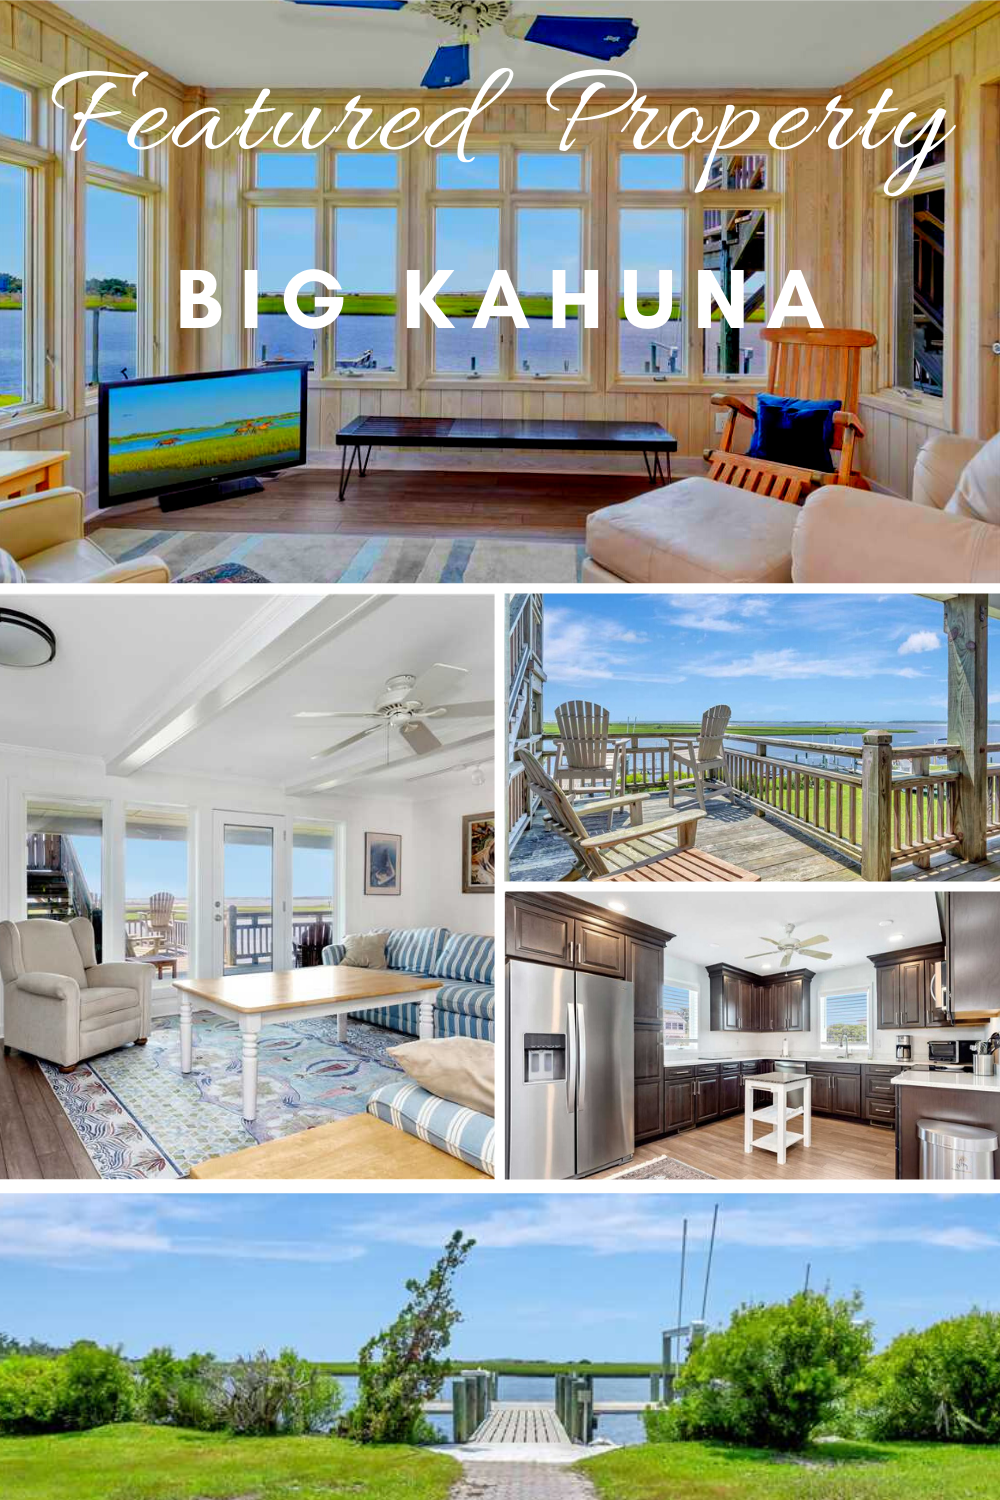 Featured Property - Big Kahuna Pinterest